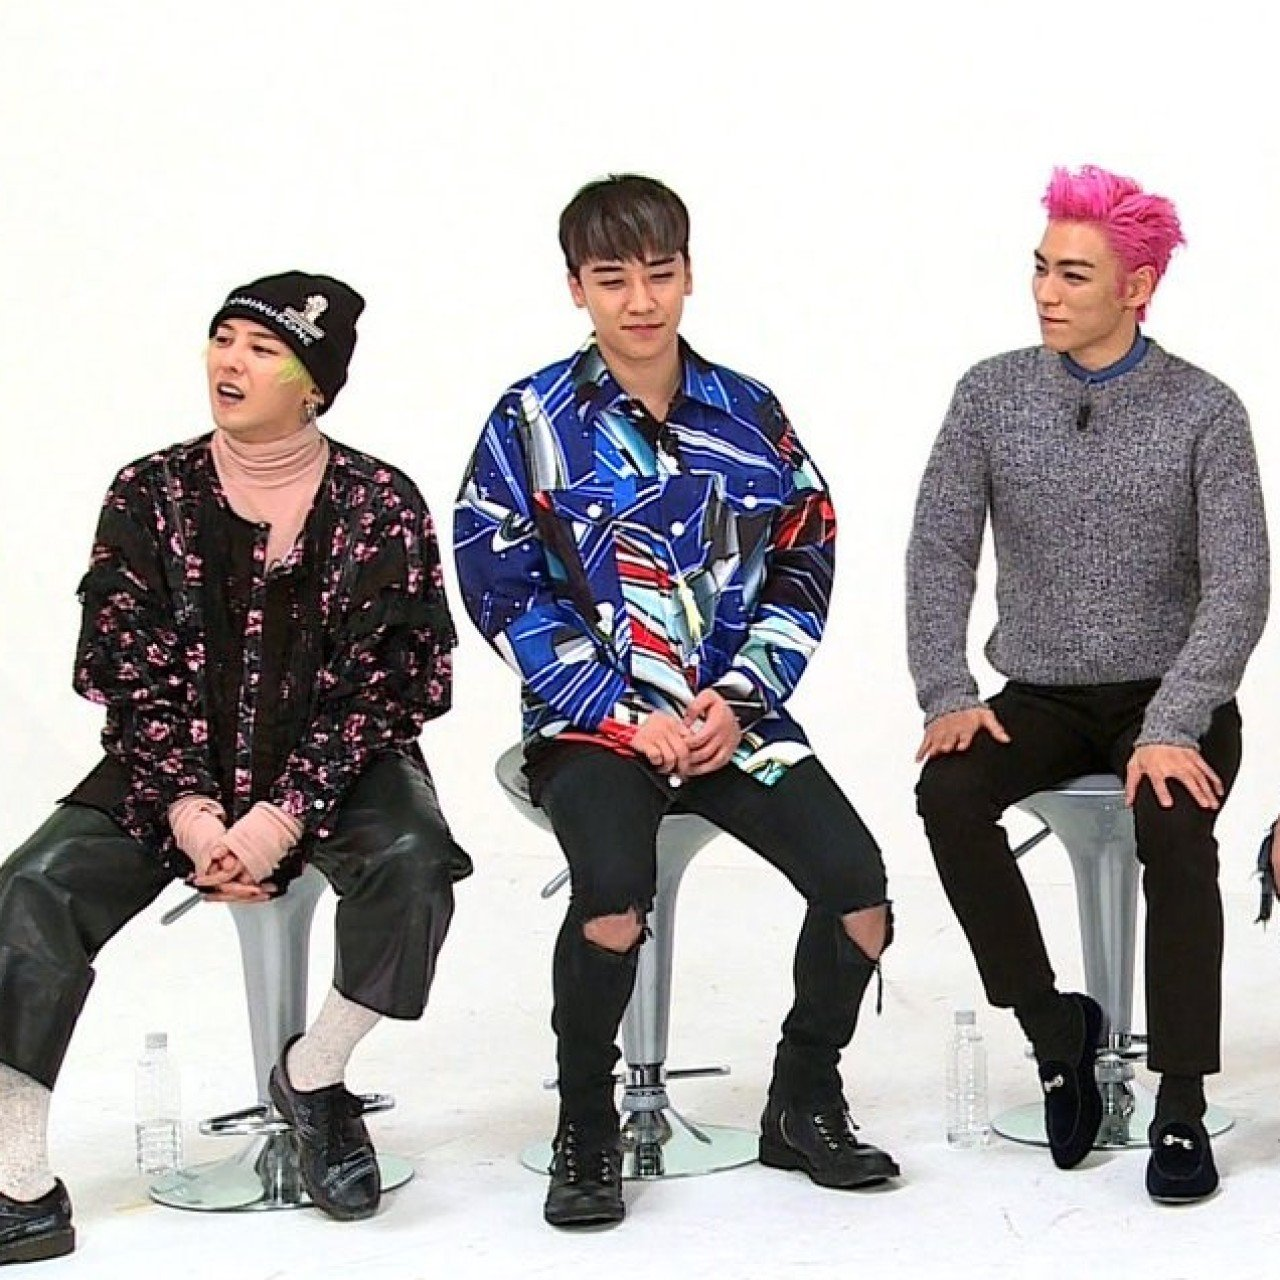 Boy band BigBang are no stranger to scandals: stories of sex